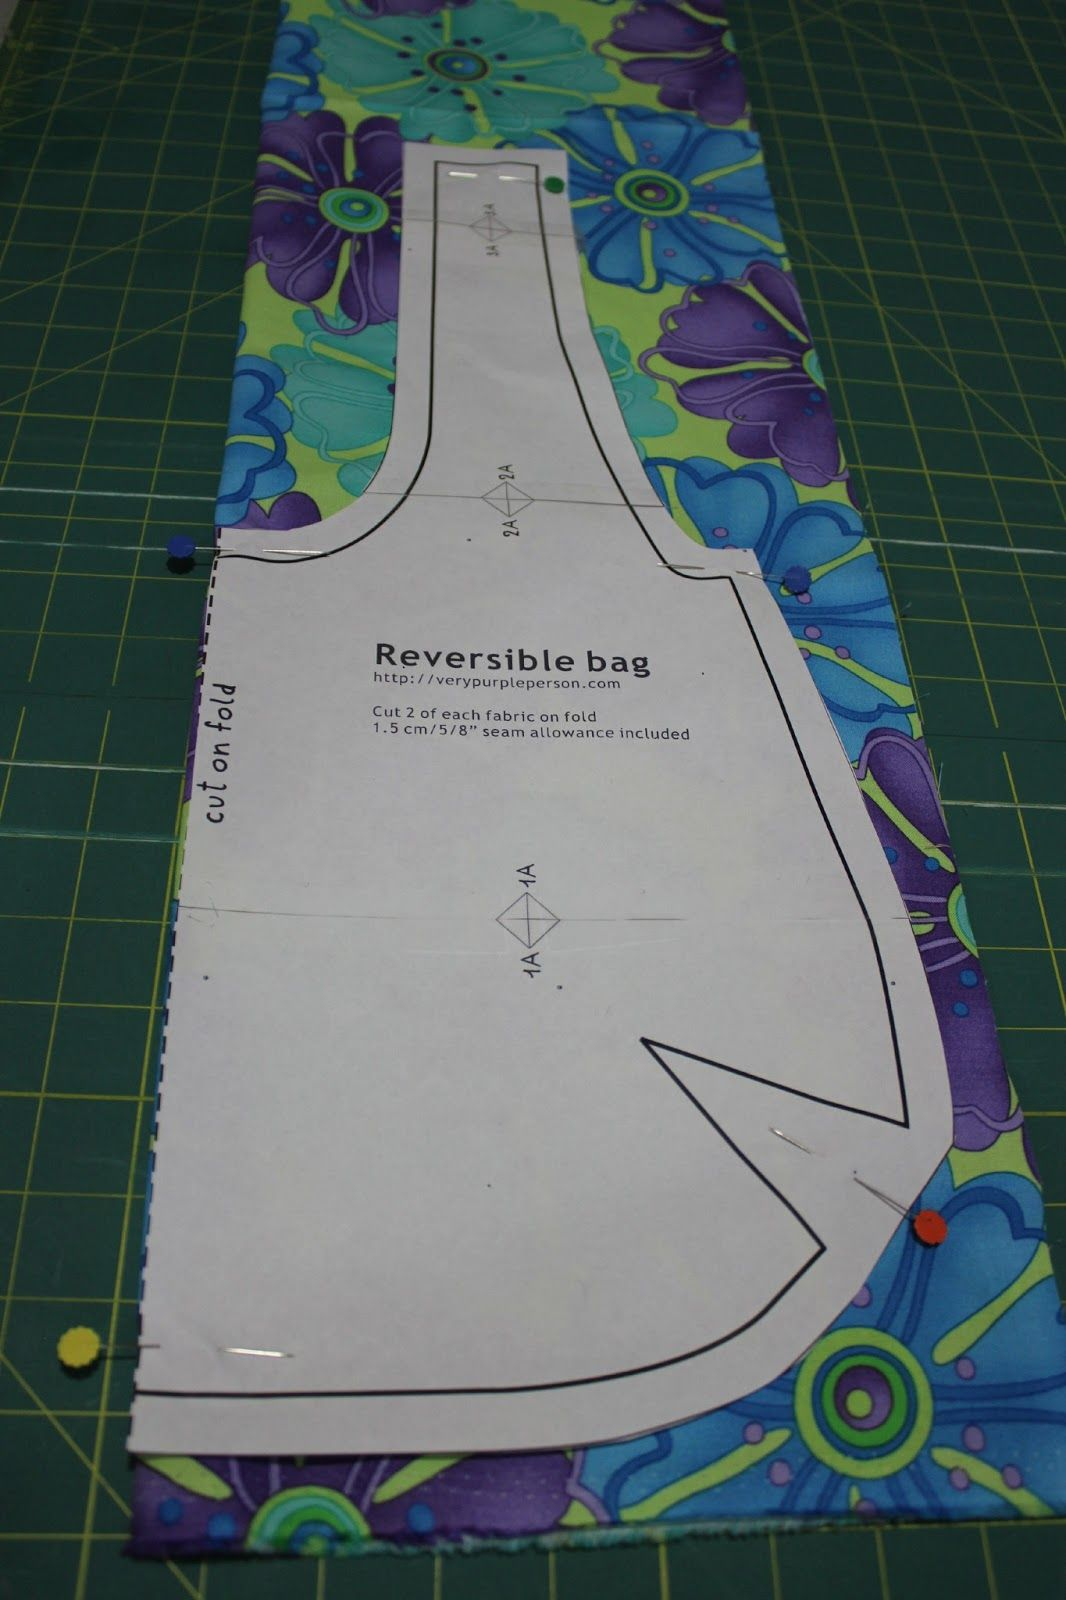 Reversible Bag Tutorial featuring Ticklish by Me &